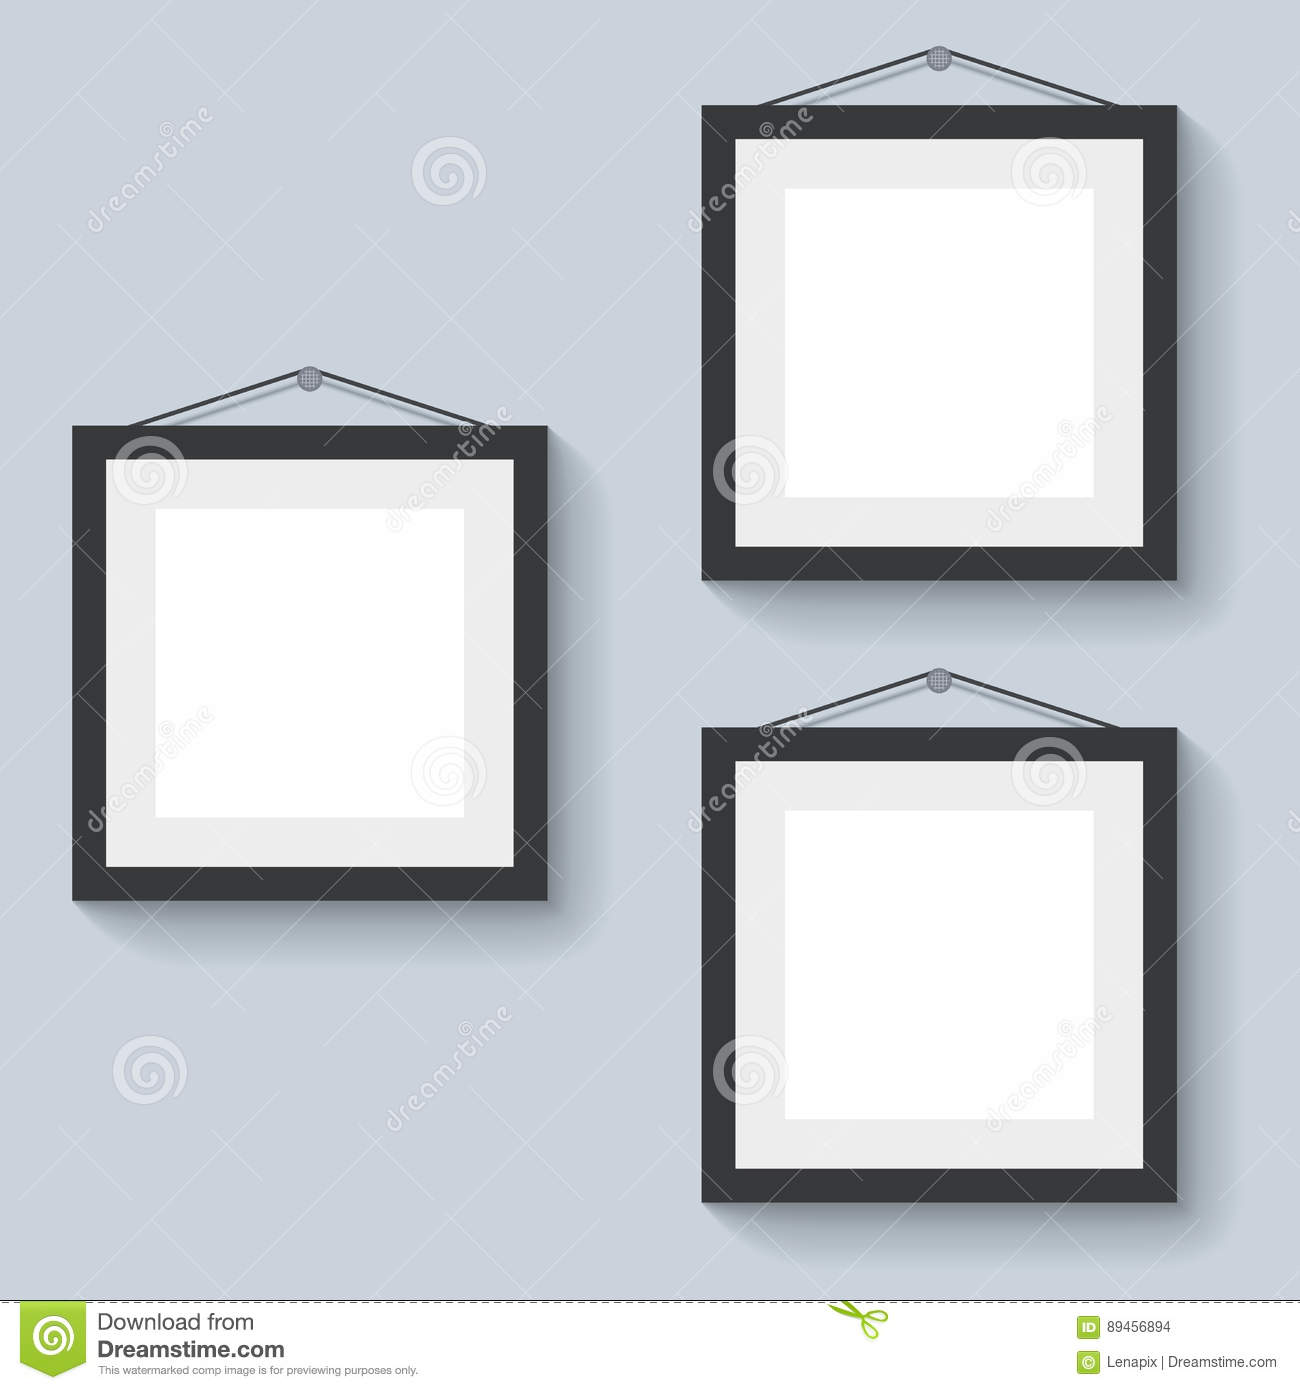 Blank Photo Frames Hanging On The Wall Stock Vector - Illustration ...